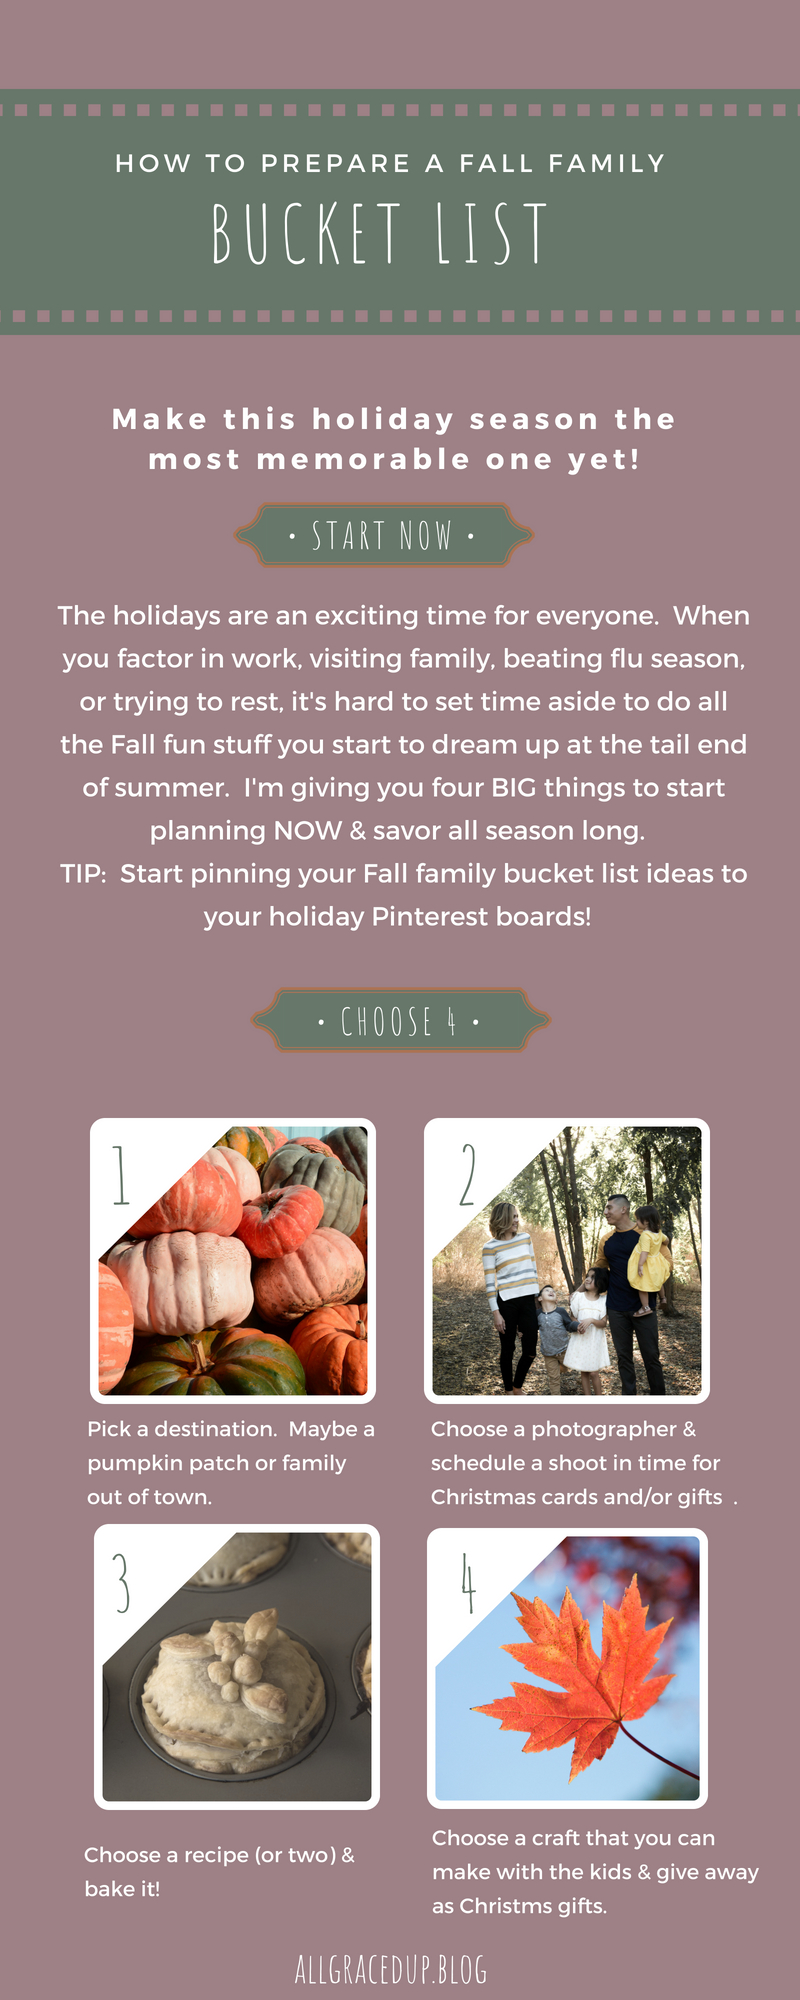 fall family bucket list by all graced up blog.jpg